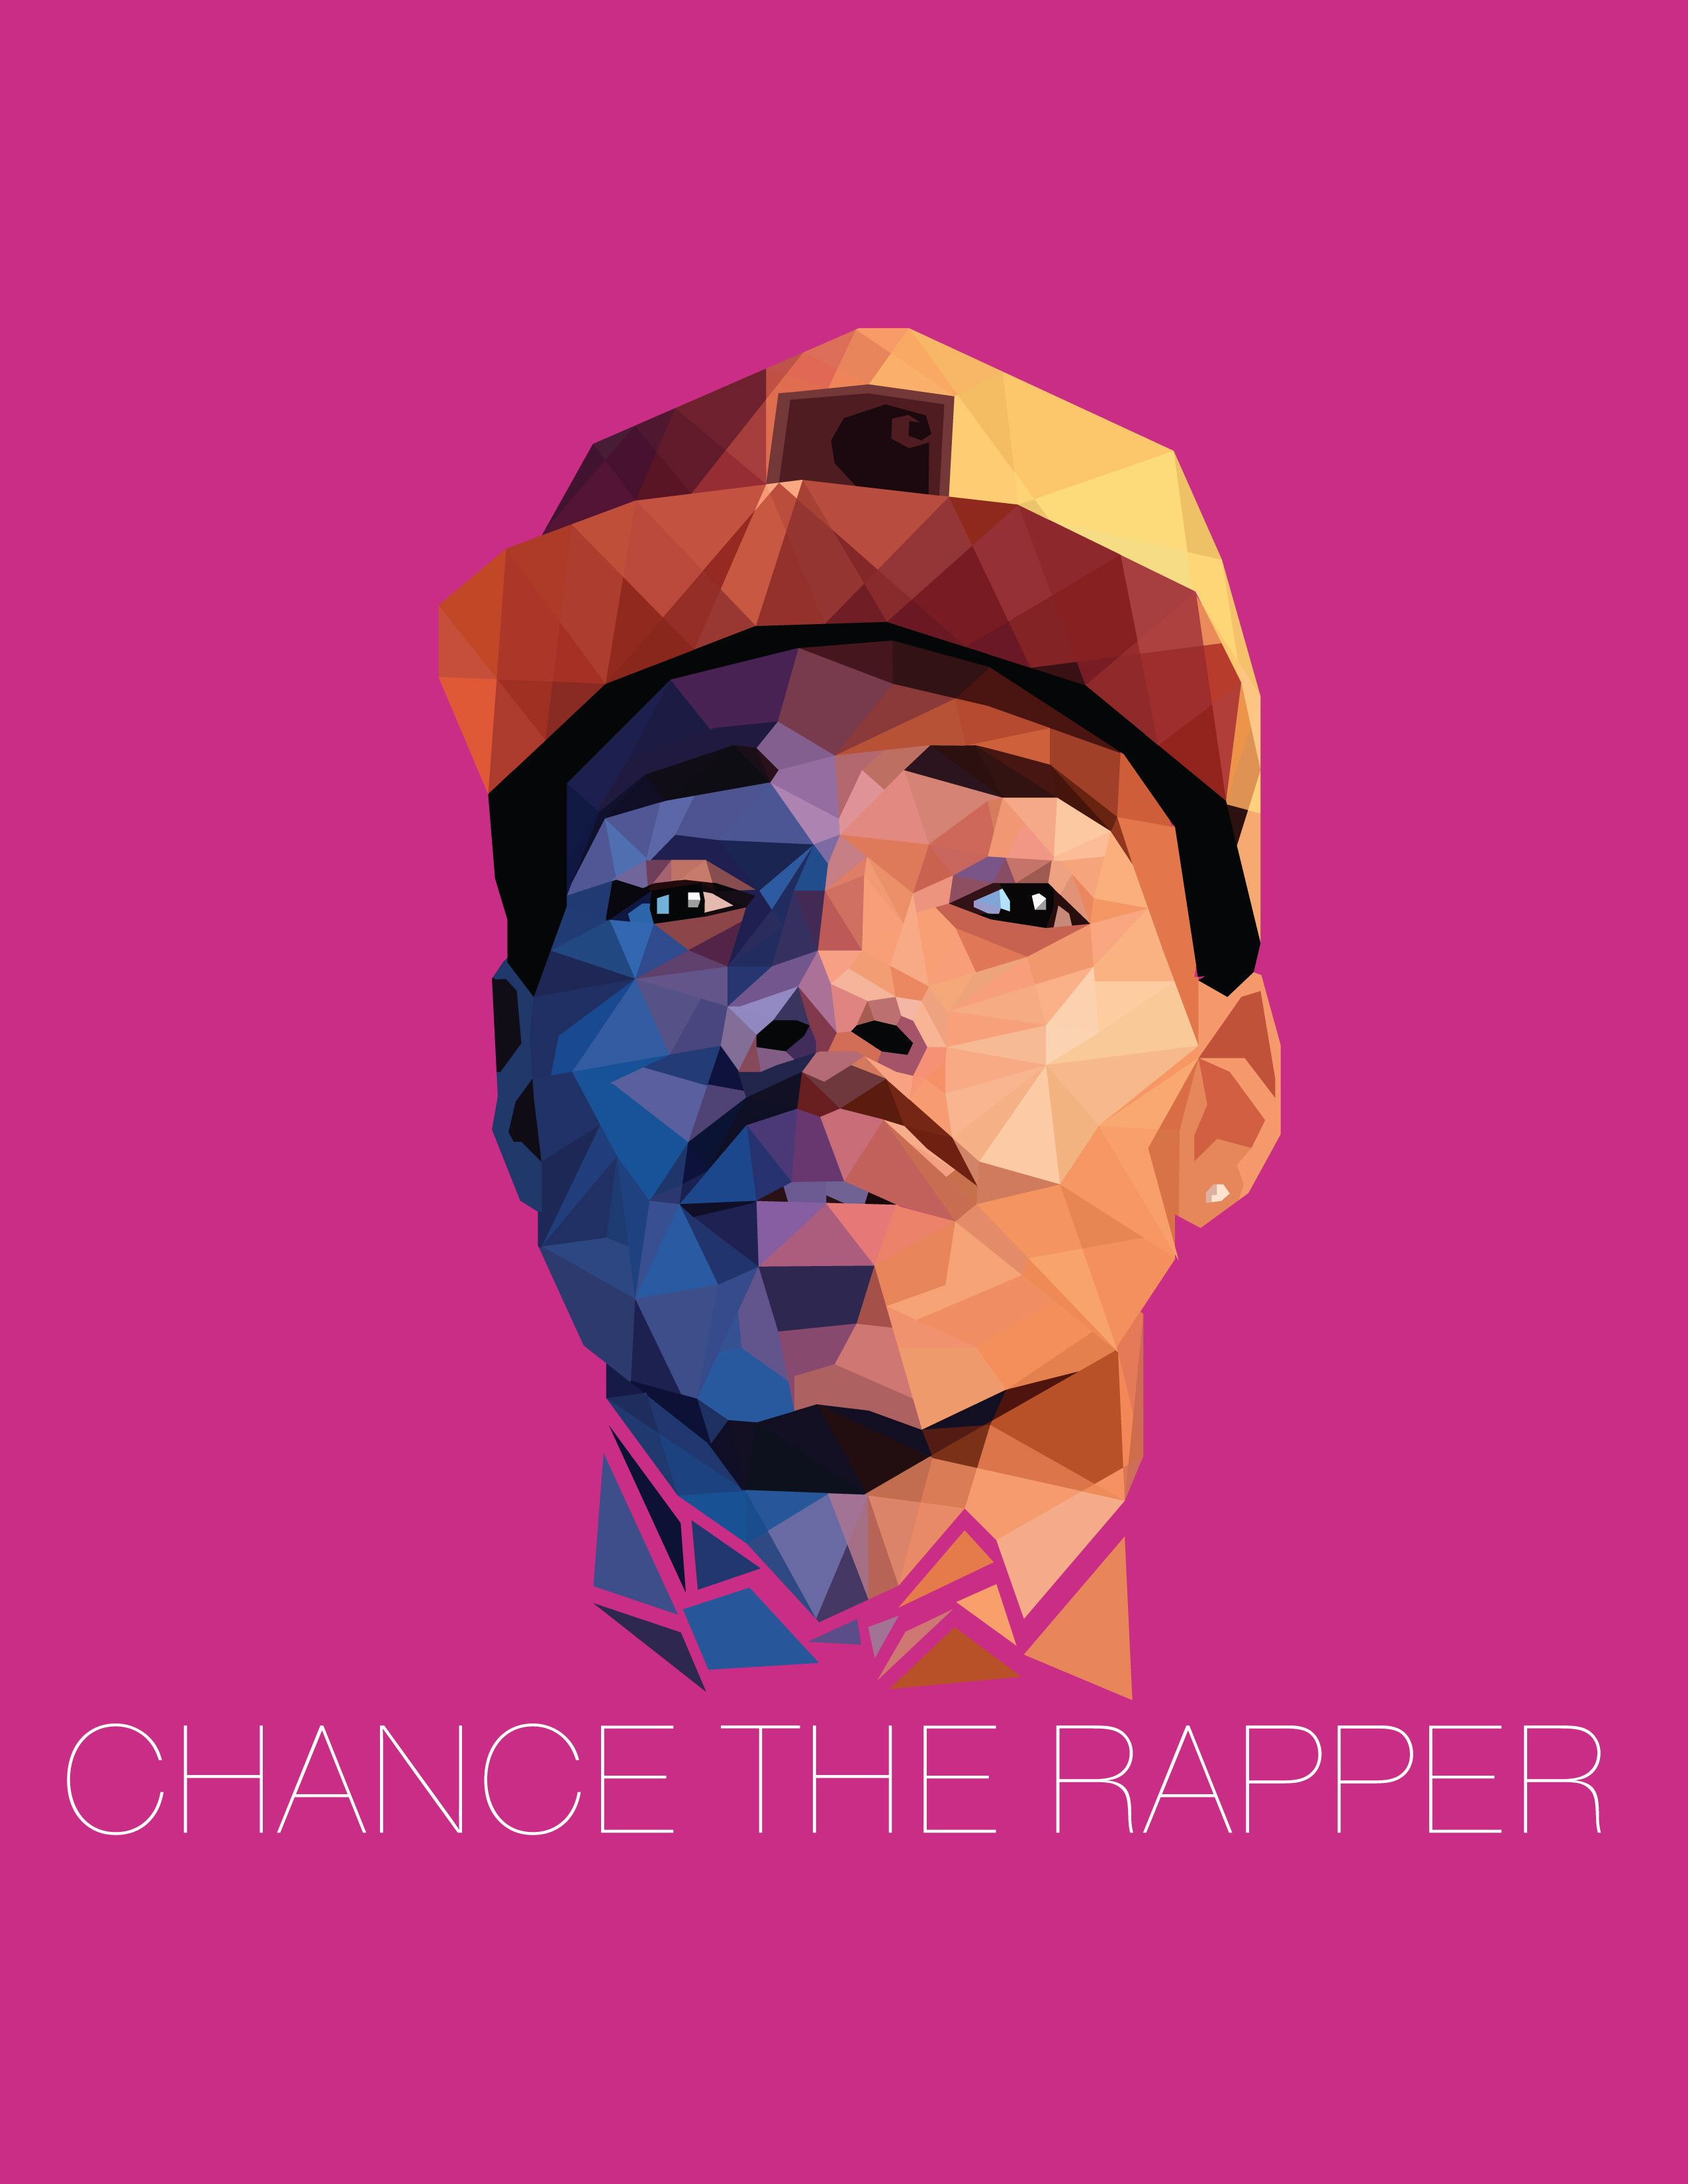 Chance the rapper juice wallpaper google search more